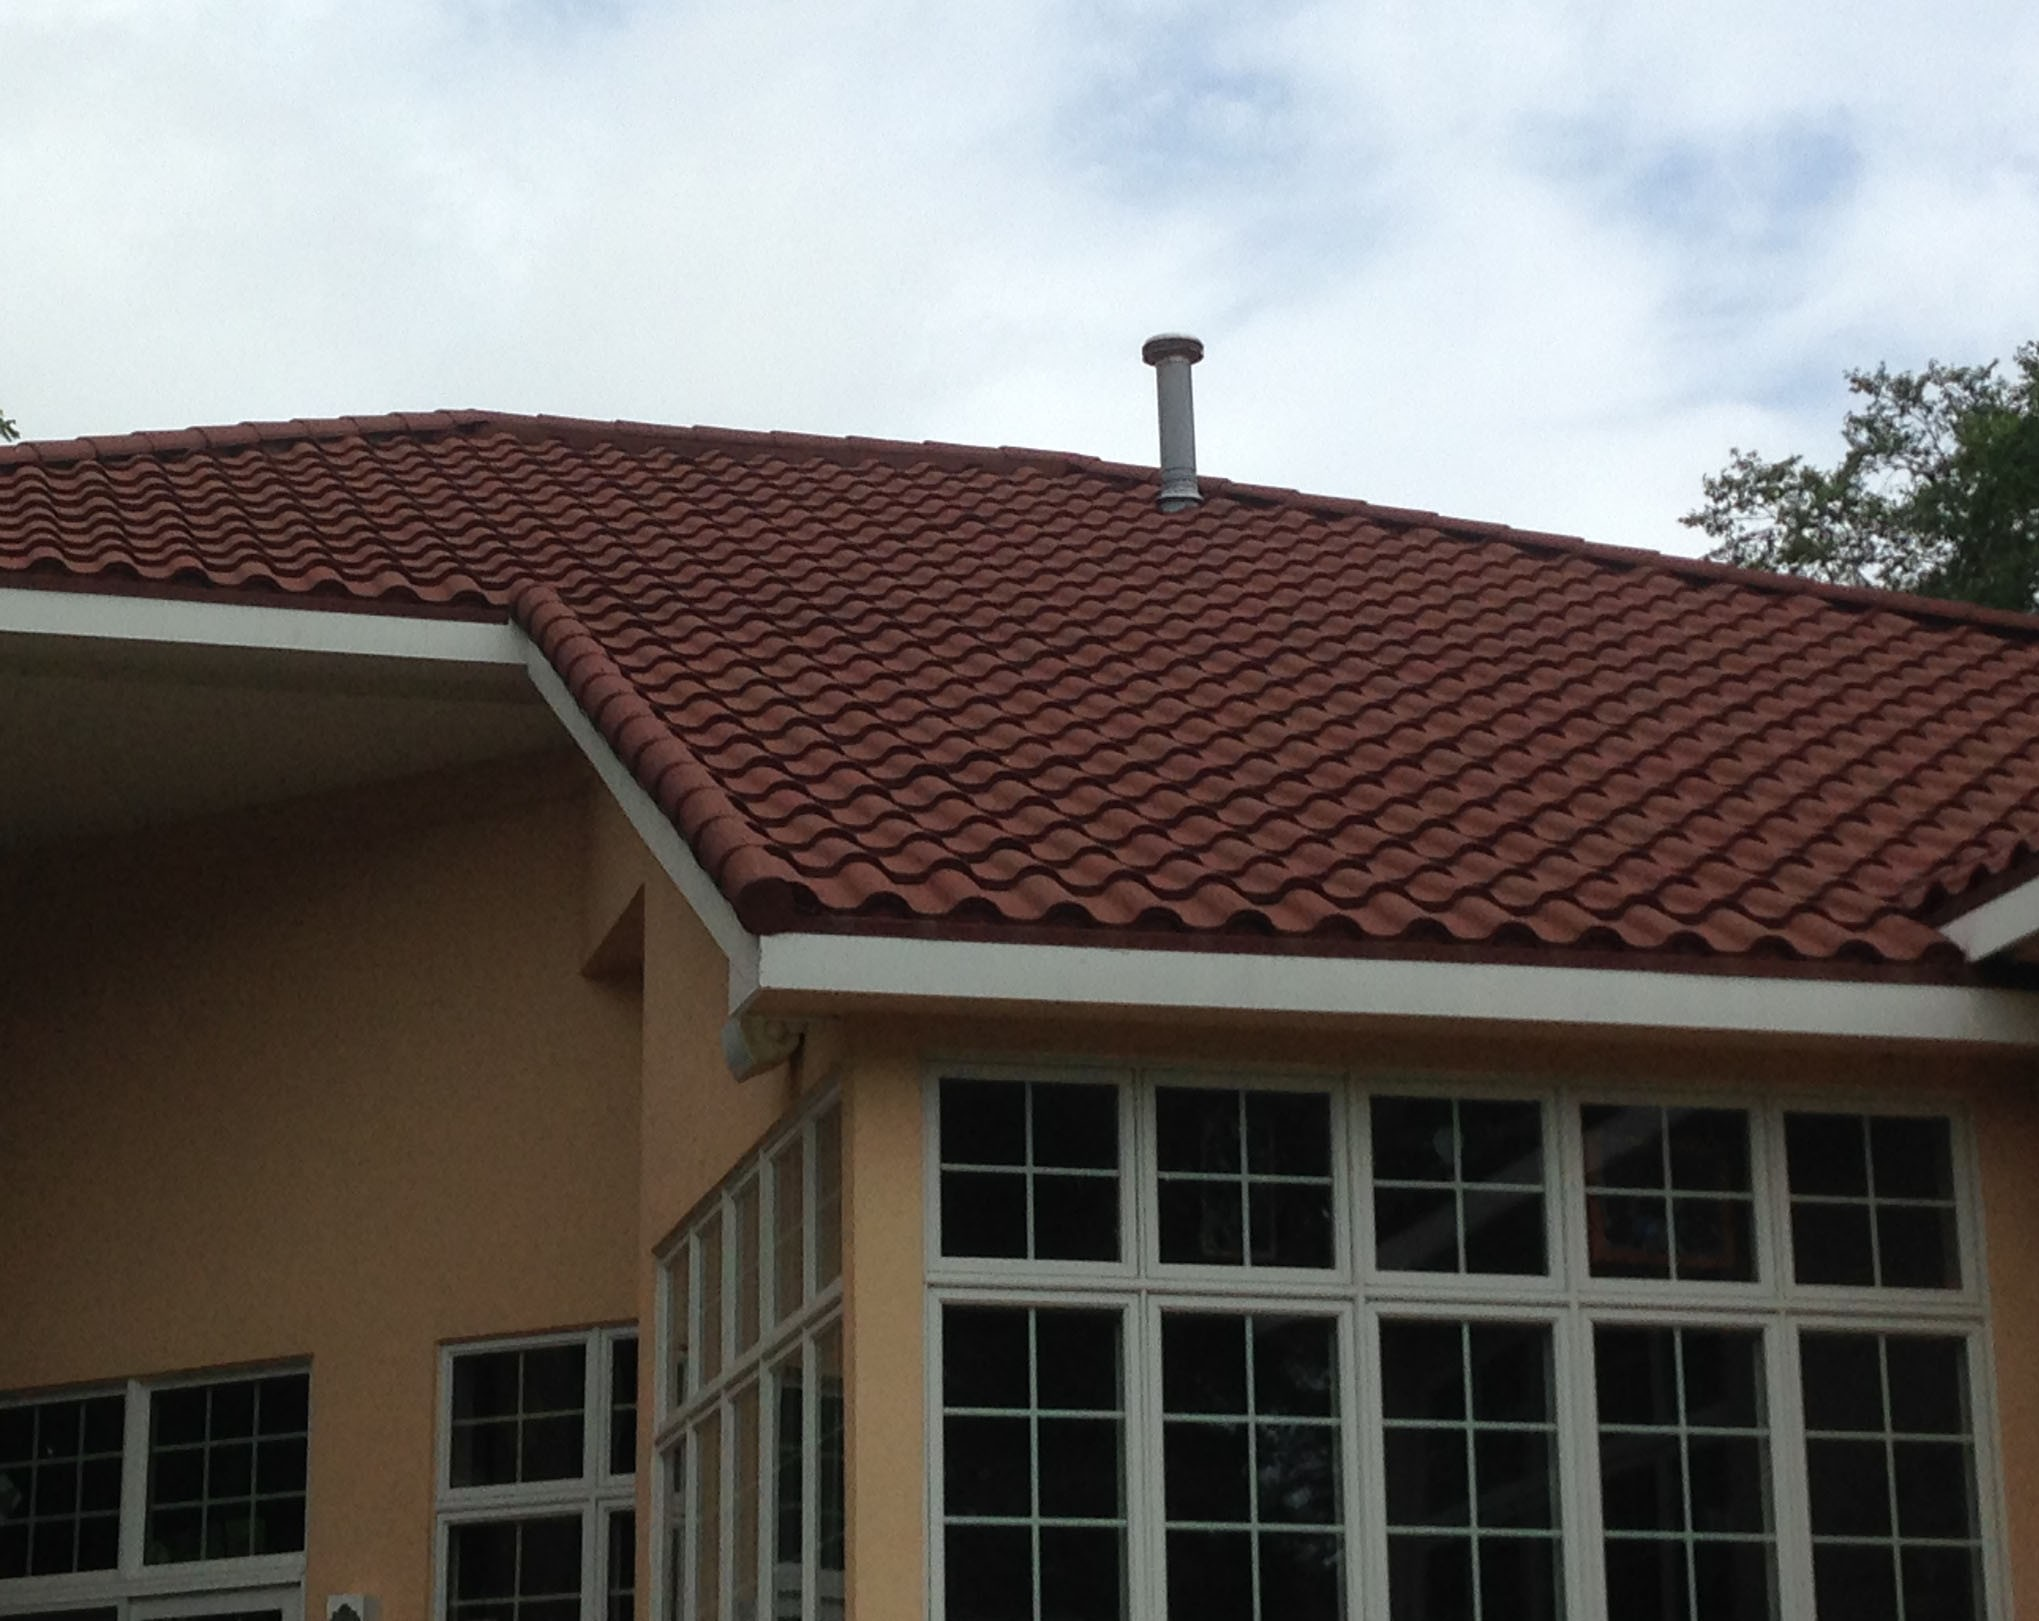 Cool Roofs - Quality Metal Shingles, Tile, and Roofing